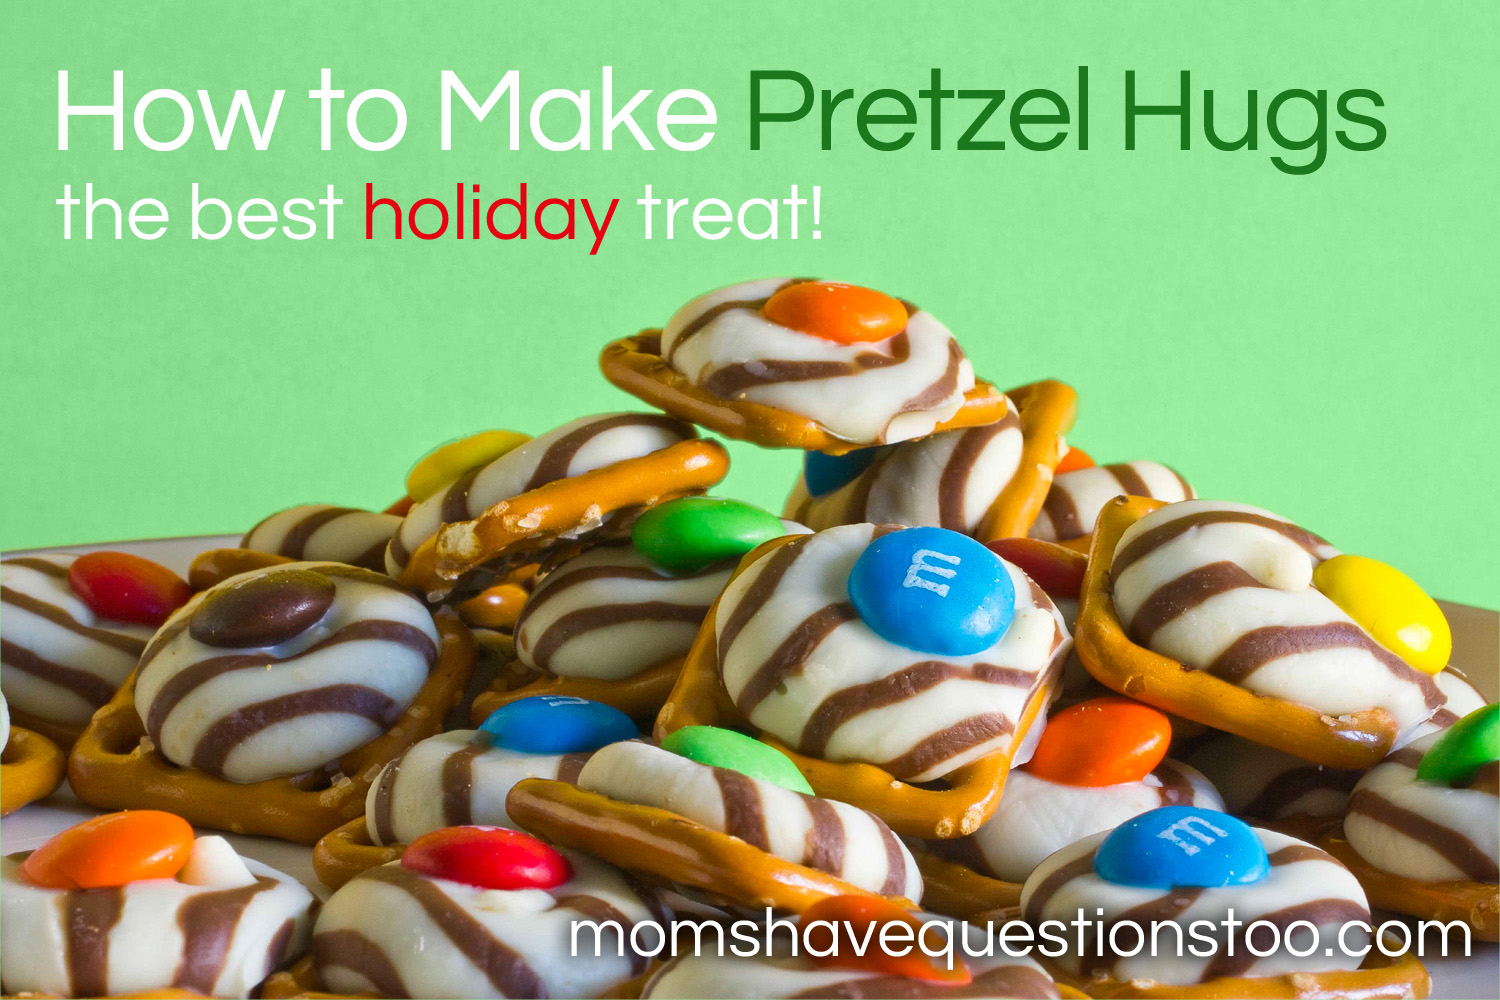 How to Make Pretzel Hugs - Moms Have Questions Too